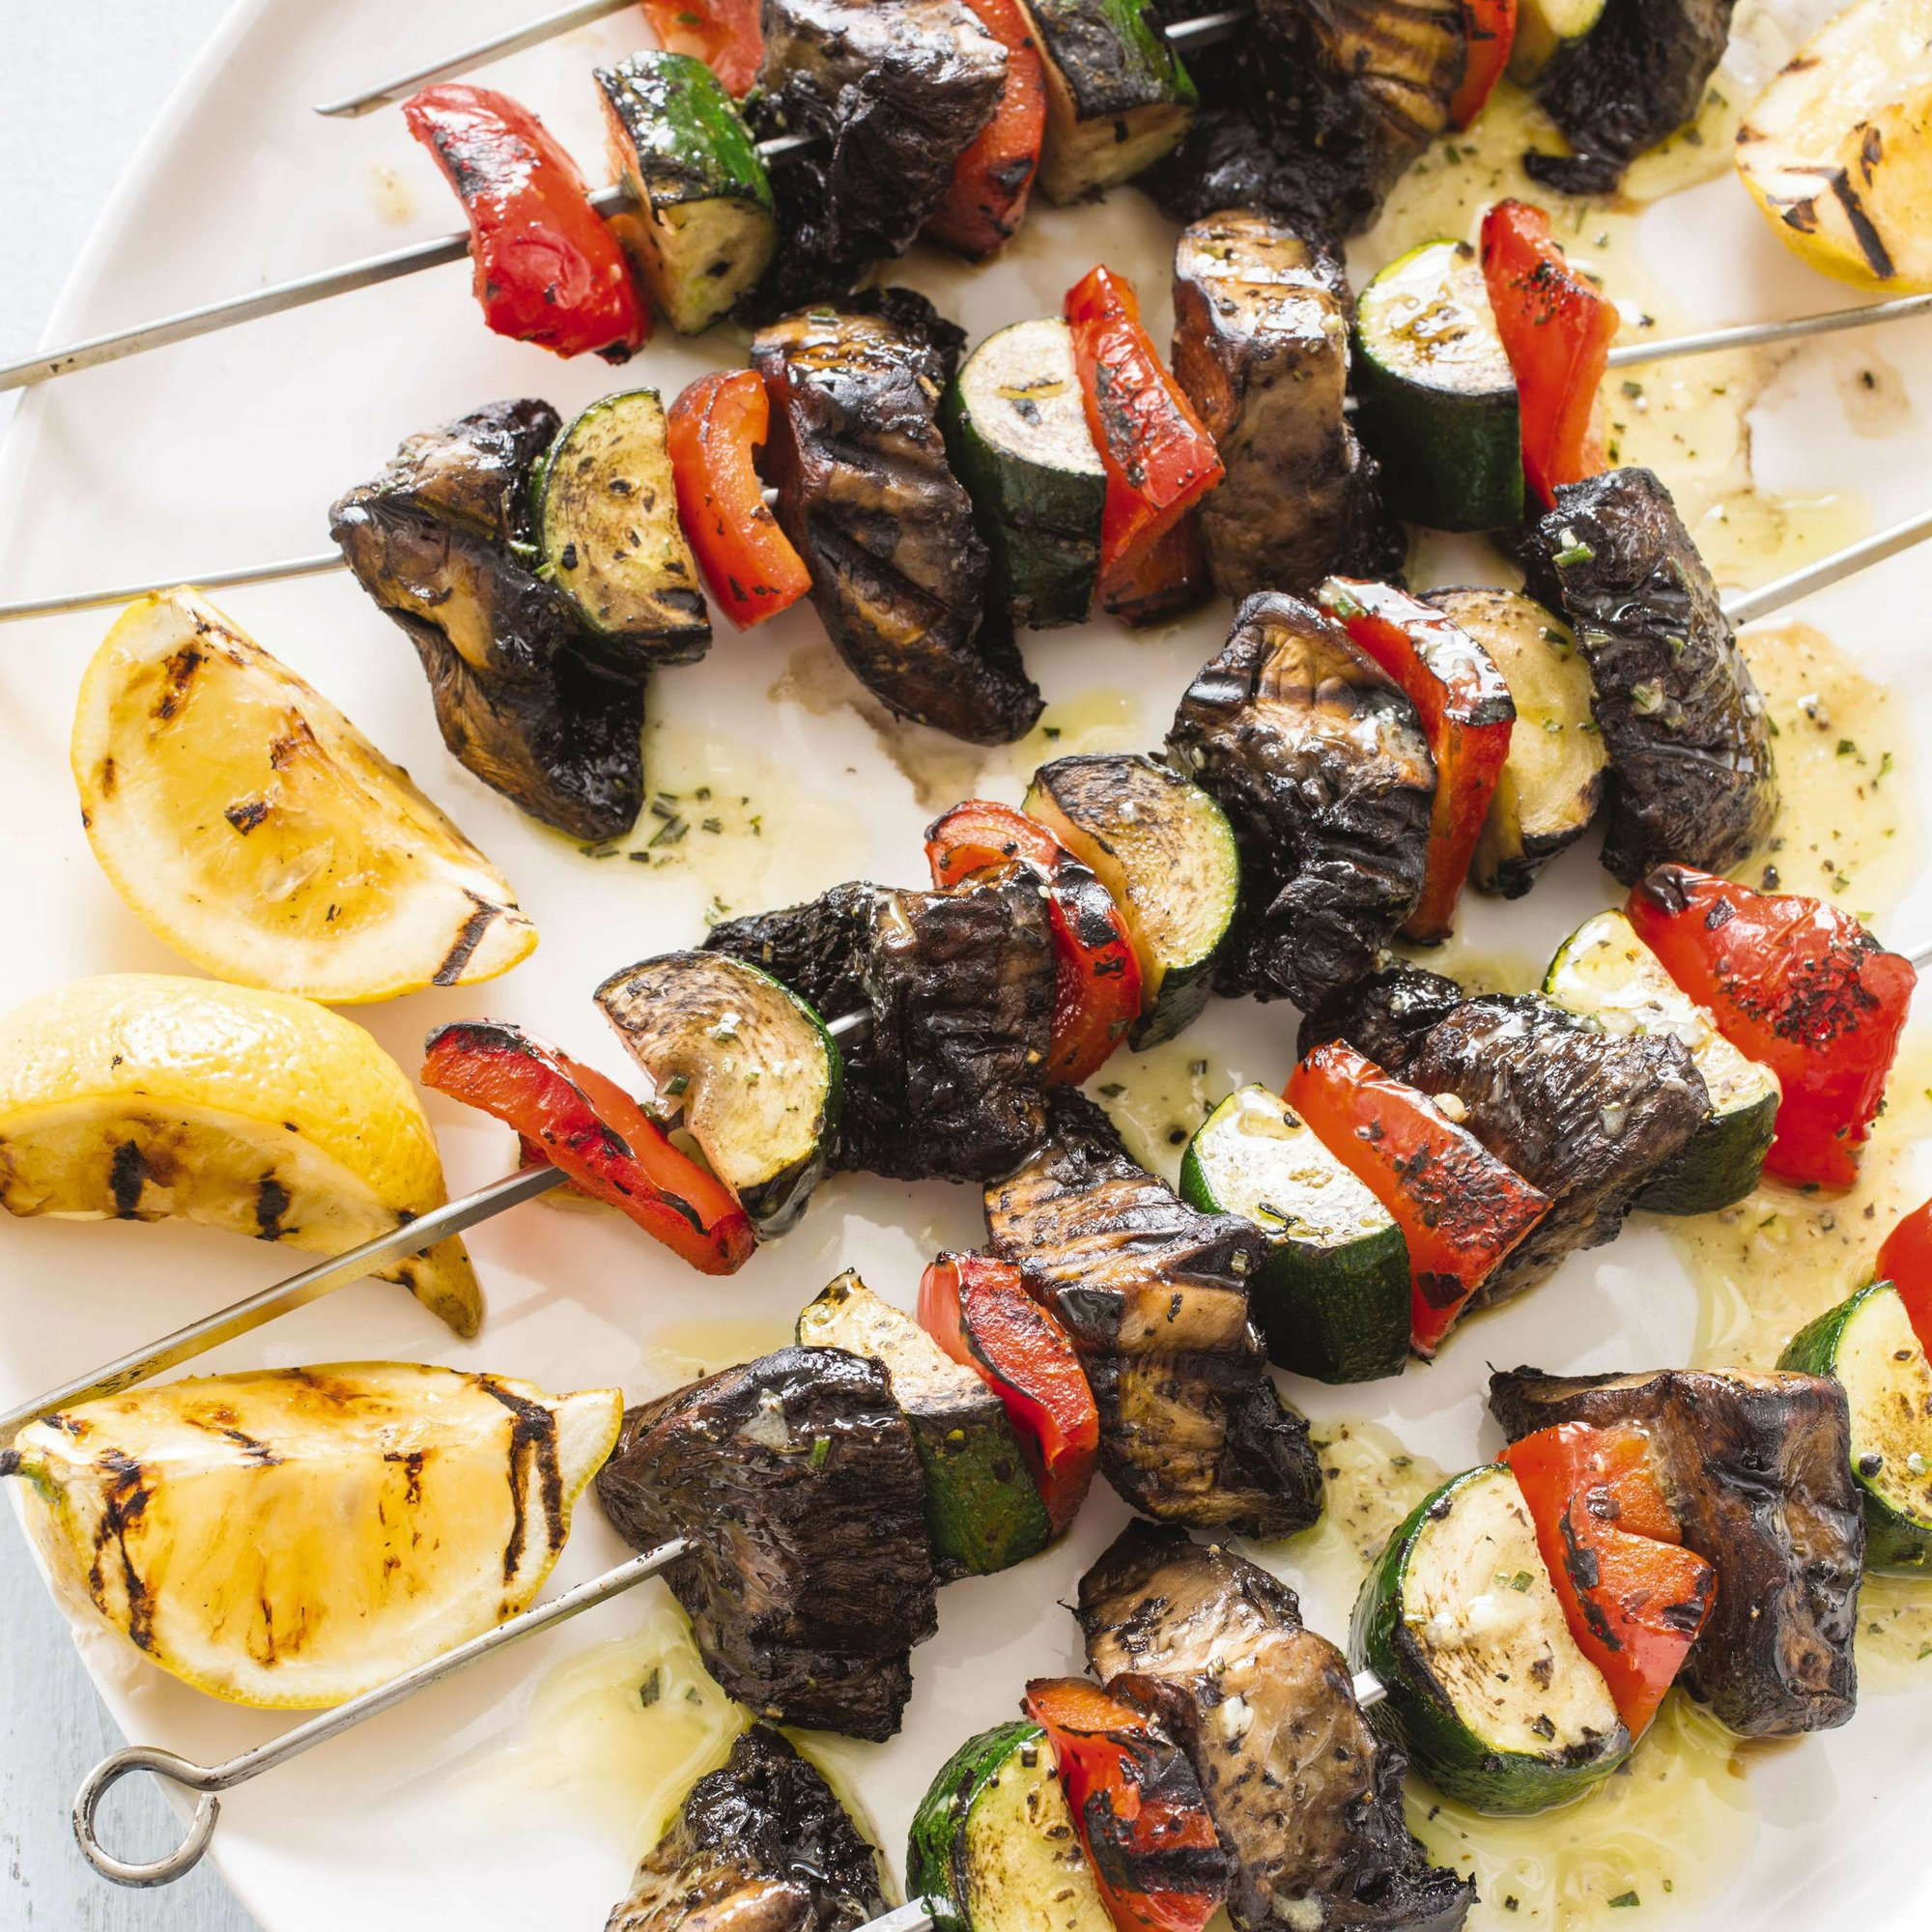 Vegetable kebabs with a crisp exterior and juicy interior